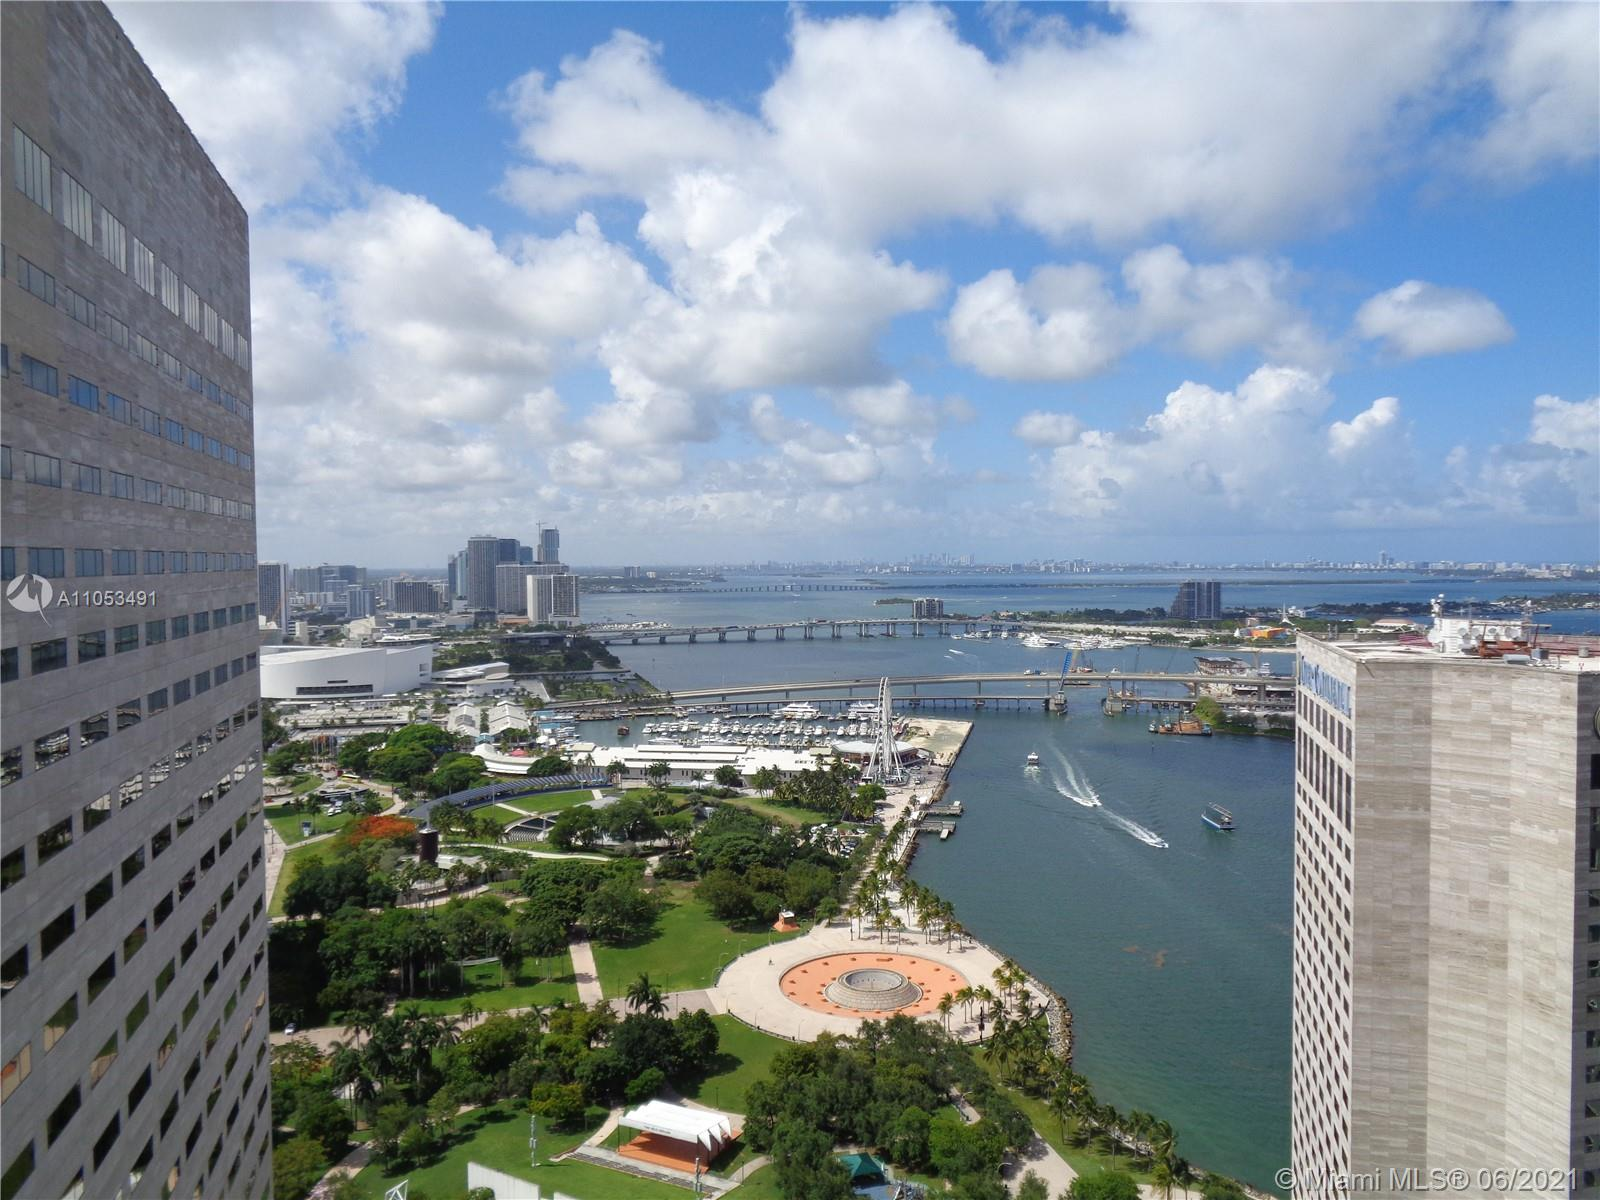 GREAT UNIT LOCATED RIGTH ON THE WATERFRONT IN DOWNTOWN MIAMI WHERE THE MIAMI RIVER MEETS THE BISCAYNE BAY. CLOSE TO BAYSIDE MARKETPLACE, BAYFRONT PARK WHERE YOU CAN ENJOY FESTIVALS AND OPEN SPACES, AMERICAN AIRLINES ARENA, THE ADRIENNE ARSHT CENTER FOR THE PERFORMING ARTS AND GREAT SHOPPING AND RESTAURANTS AT WALKING DISTANCE.  ONE MIAMI BUILDING ALSO HAVE EXCELLENT AMENITIES, BEAUTIFUL POOL AND TWO WELL EQUIPPED  GYMS.